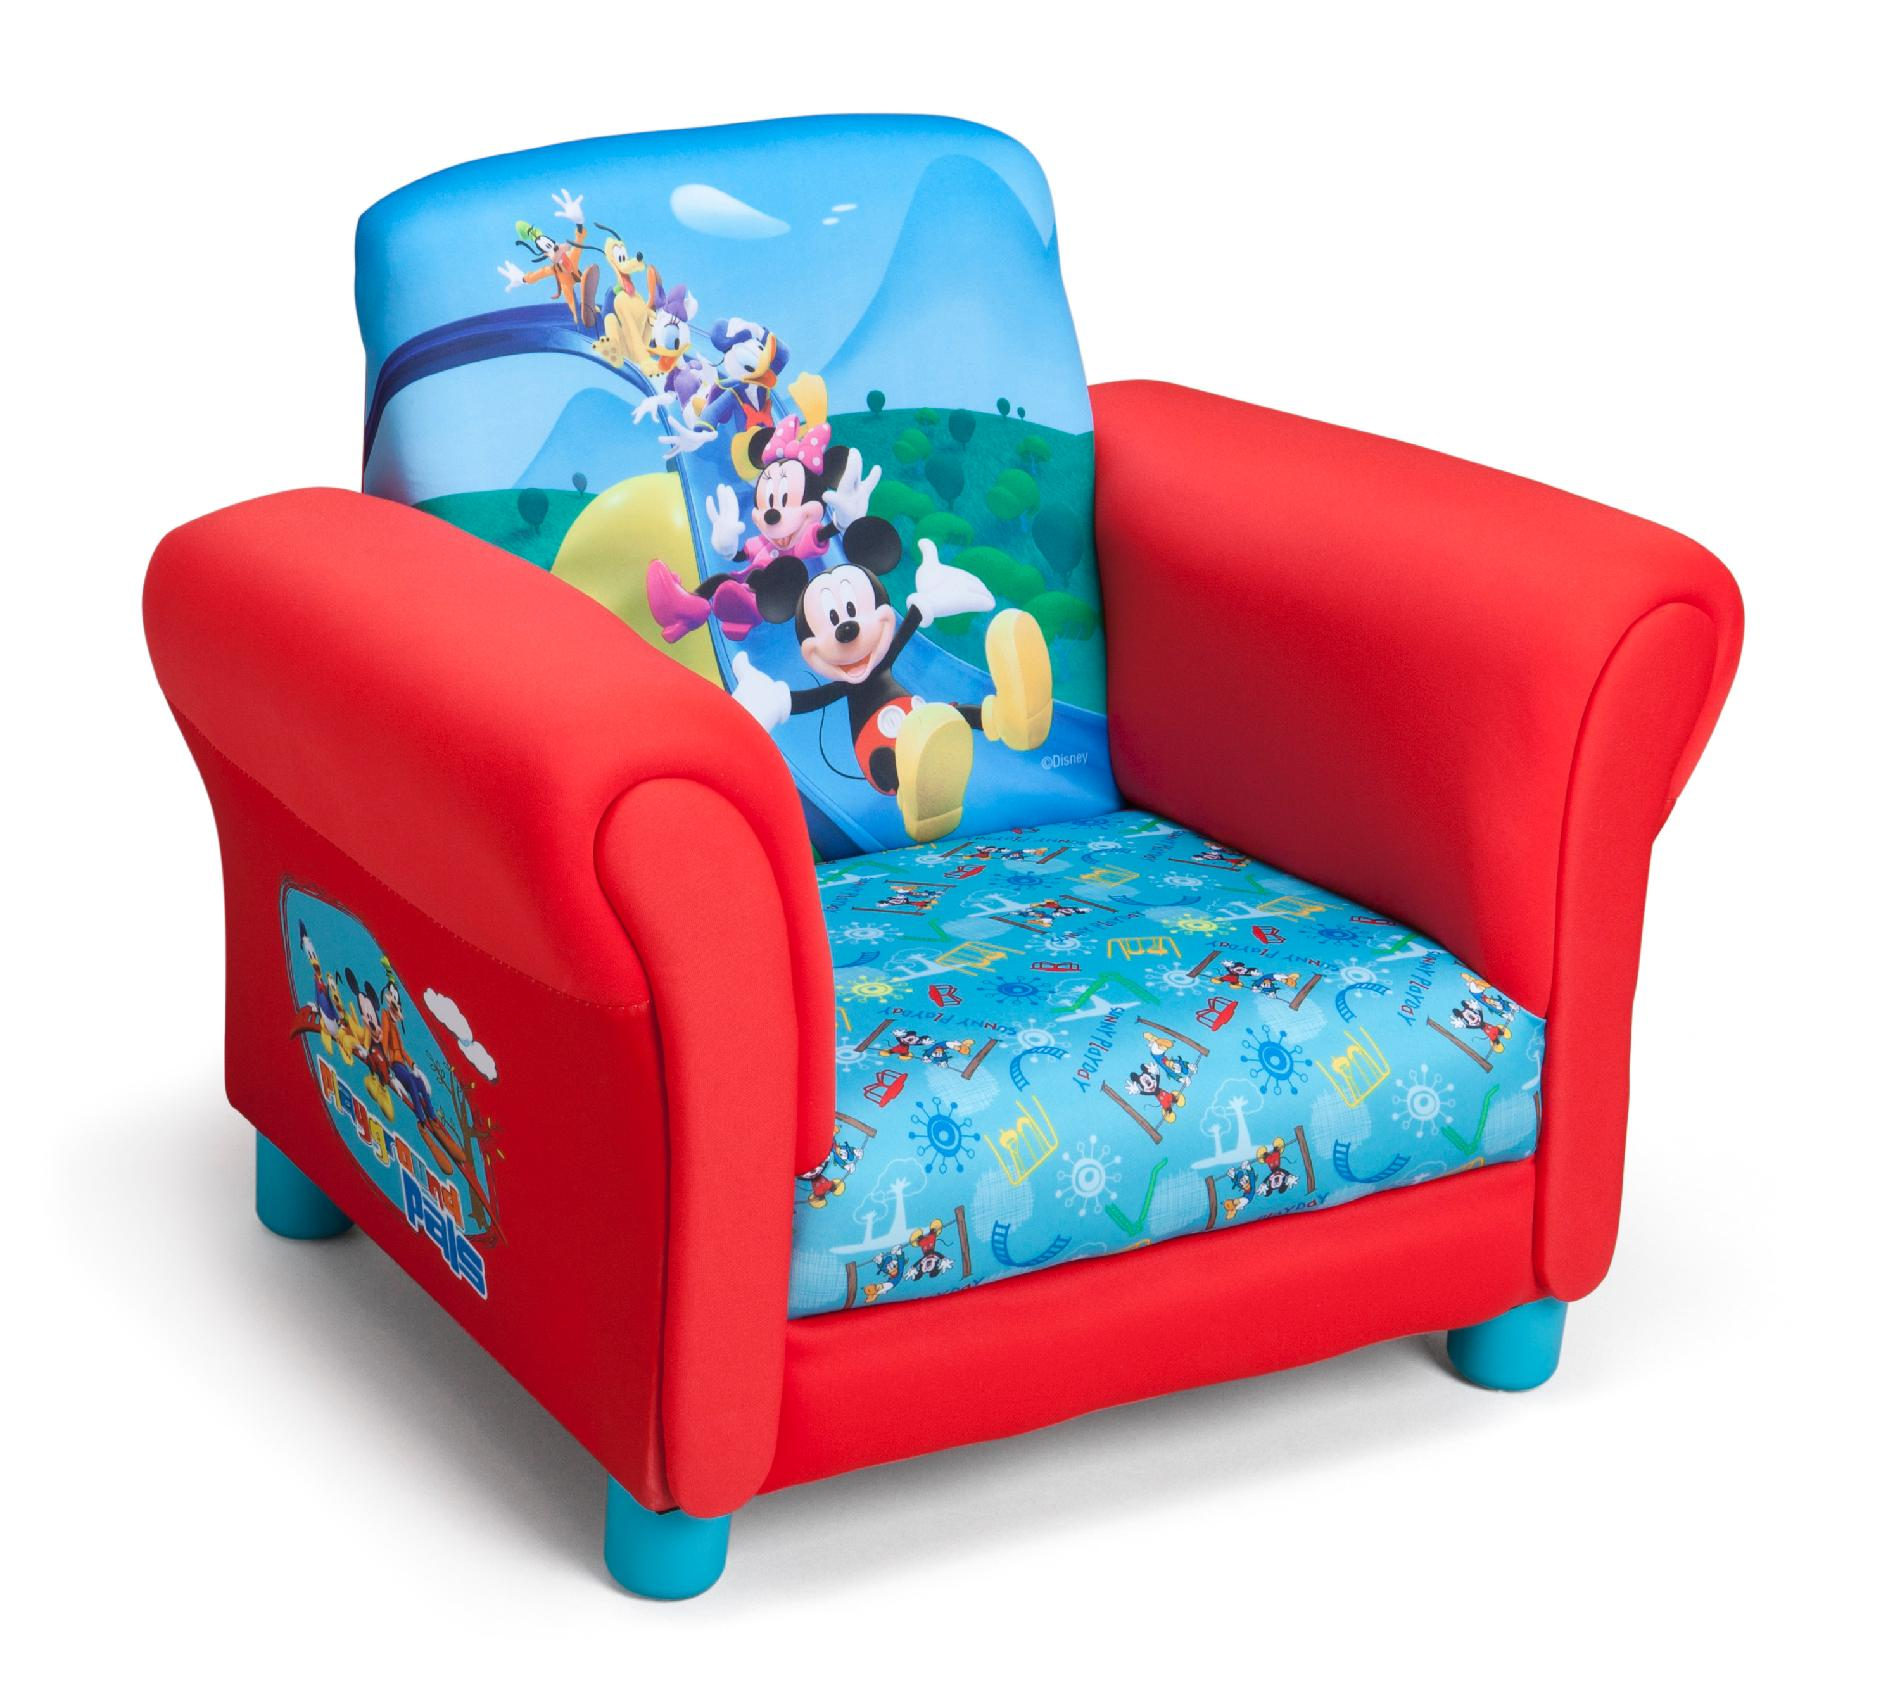 Toddler Chairs Upholstered Delta Children Tc85692mm Kids Club Upholstered Chair